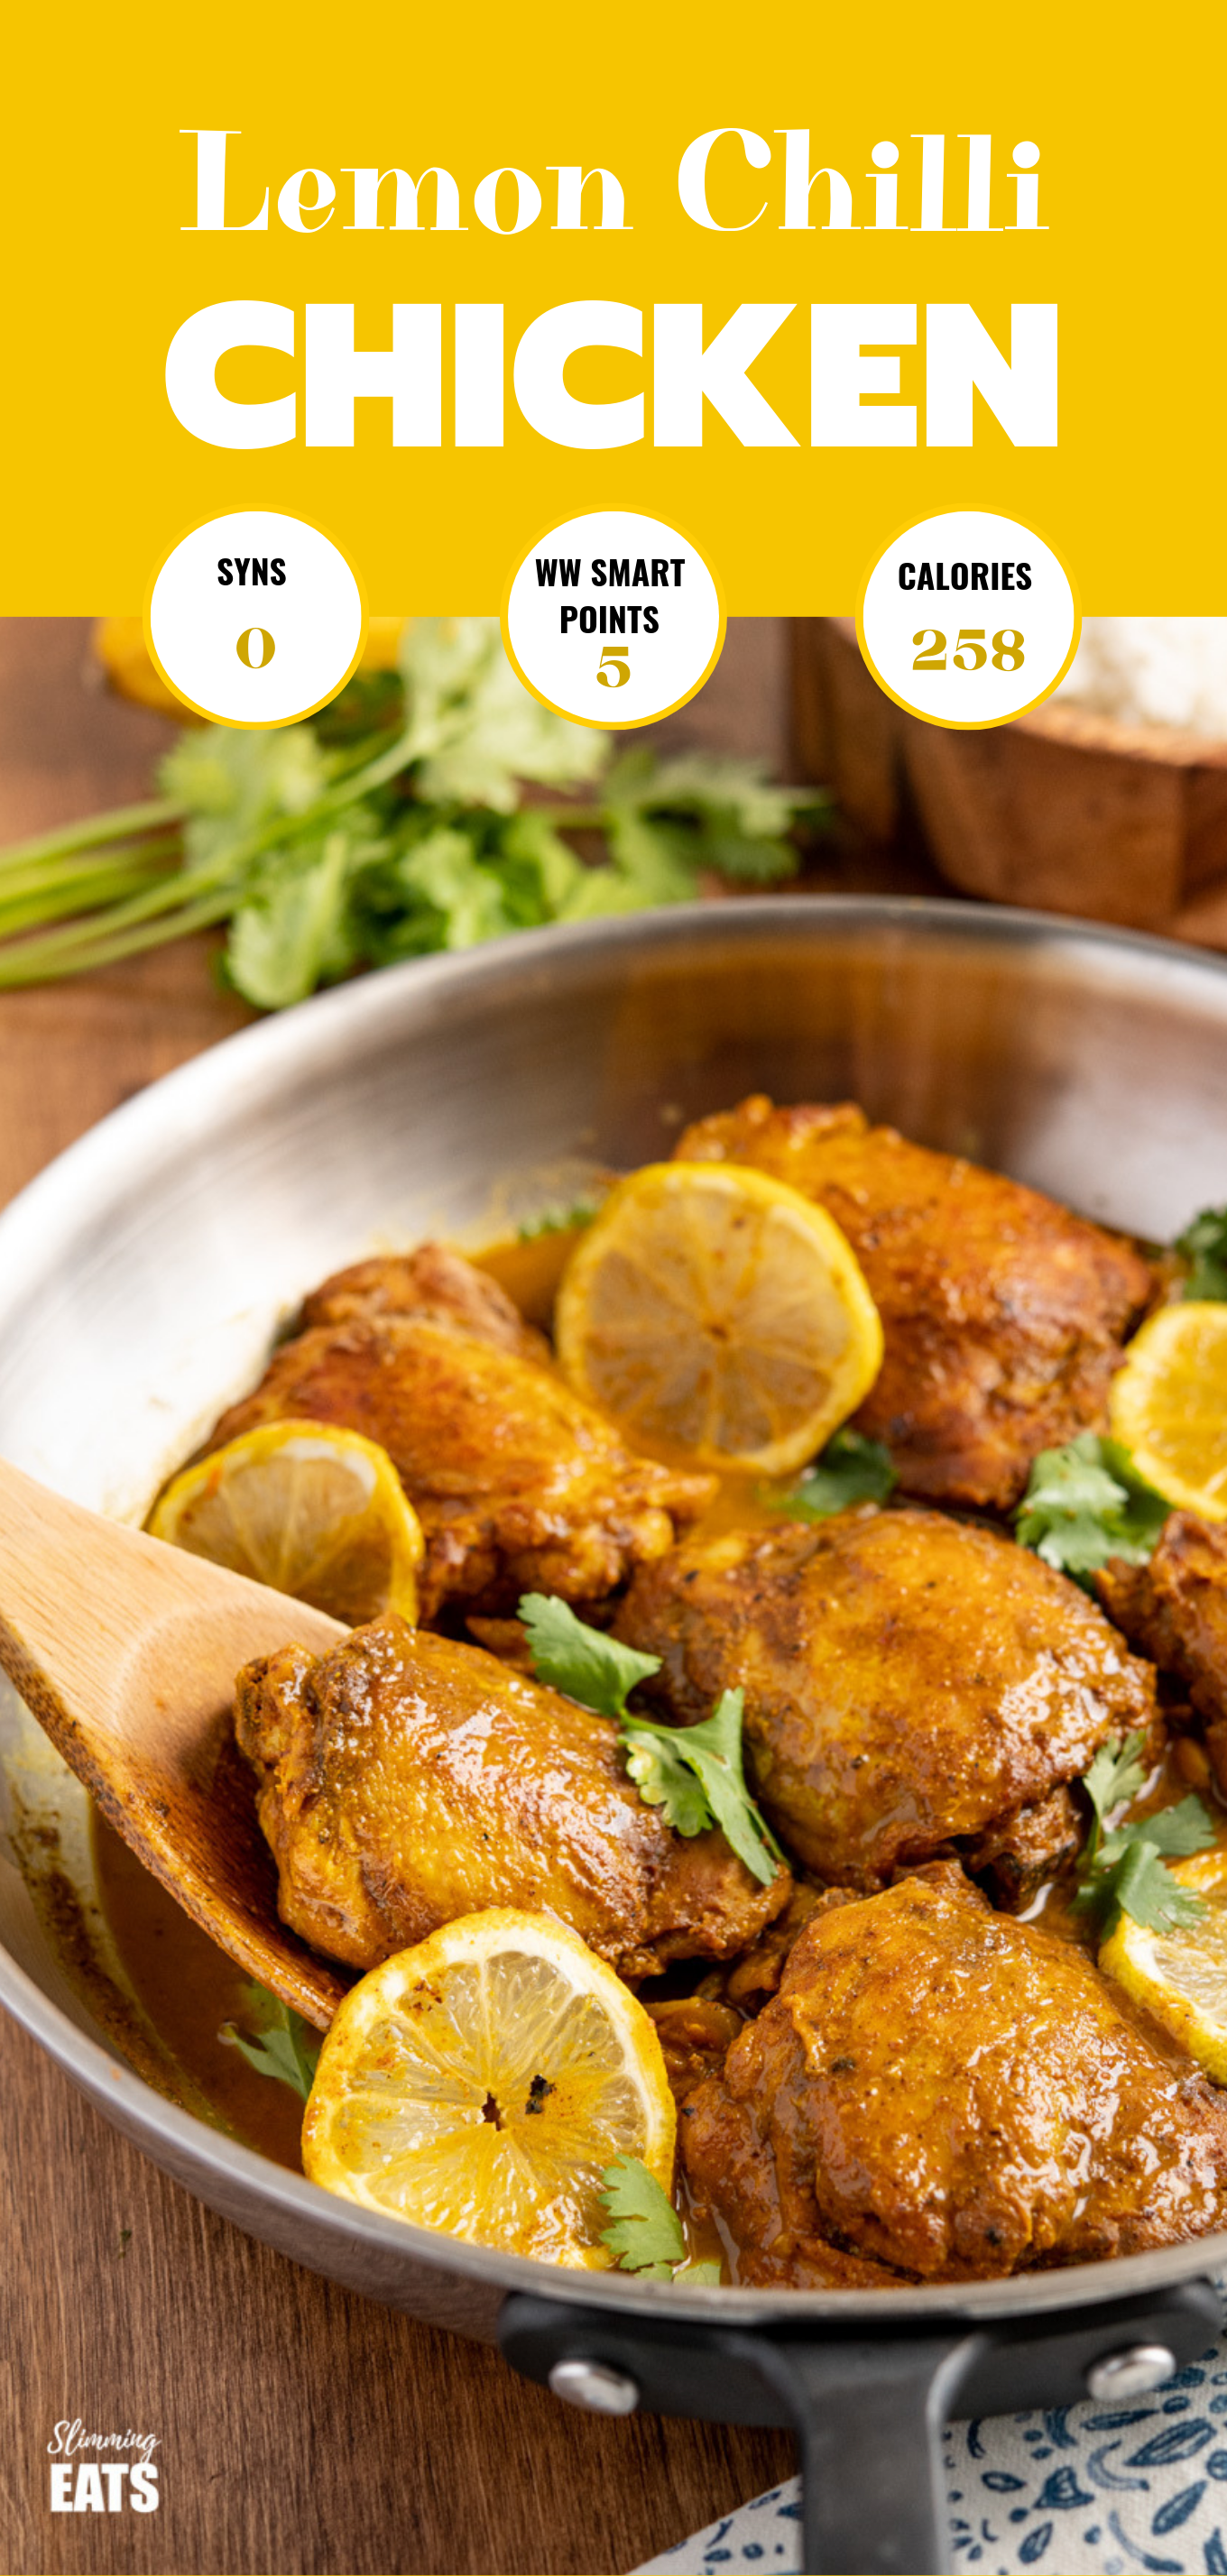 lemon chilli chicken featured pin image